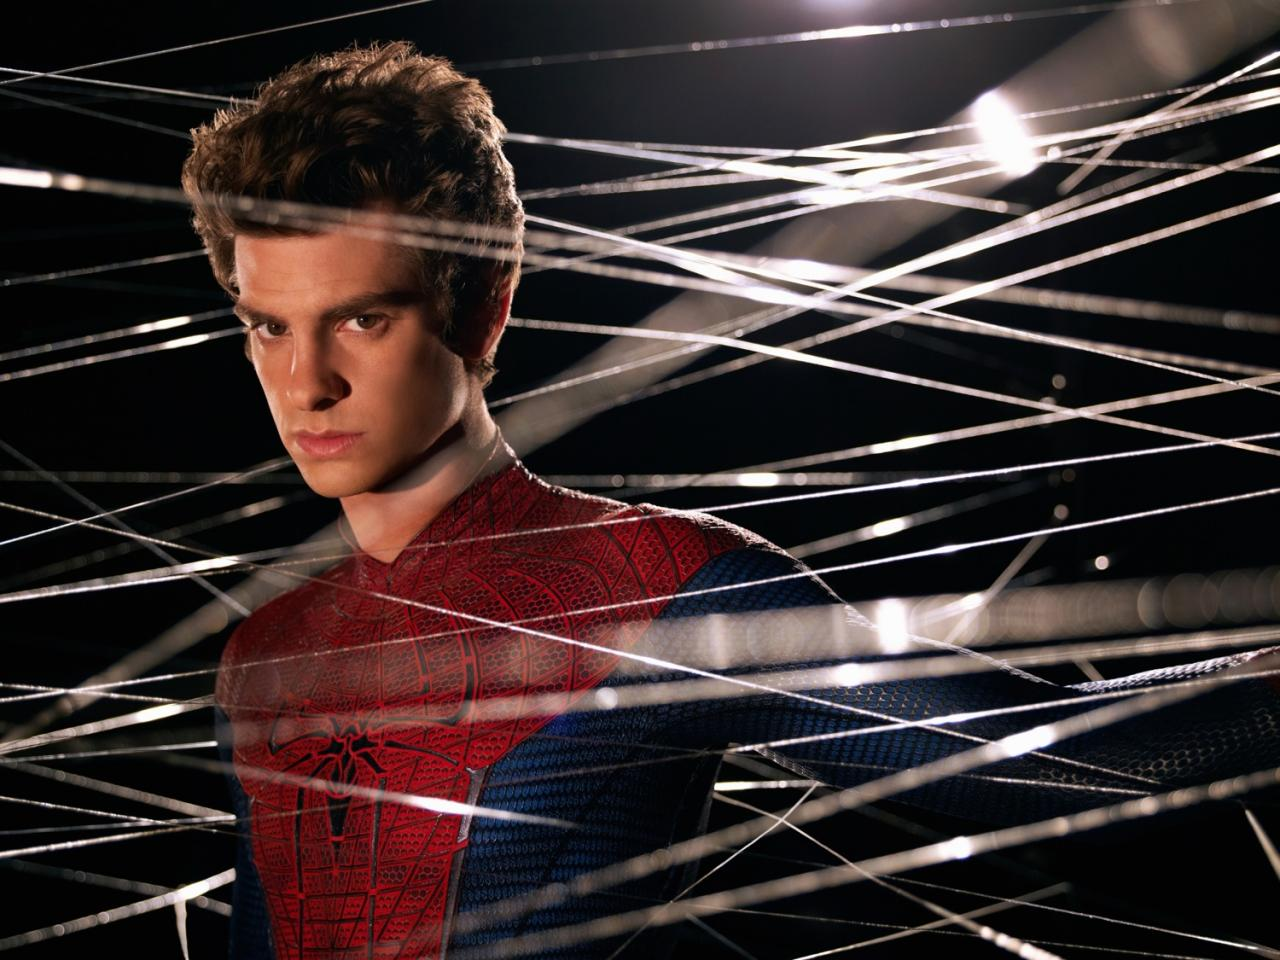 The two Peter Parkers meet: Tobey Maguire shares 'Spider-Man' fame to Andrew Garfield